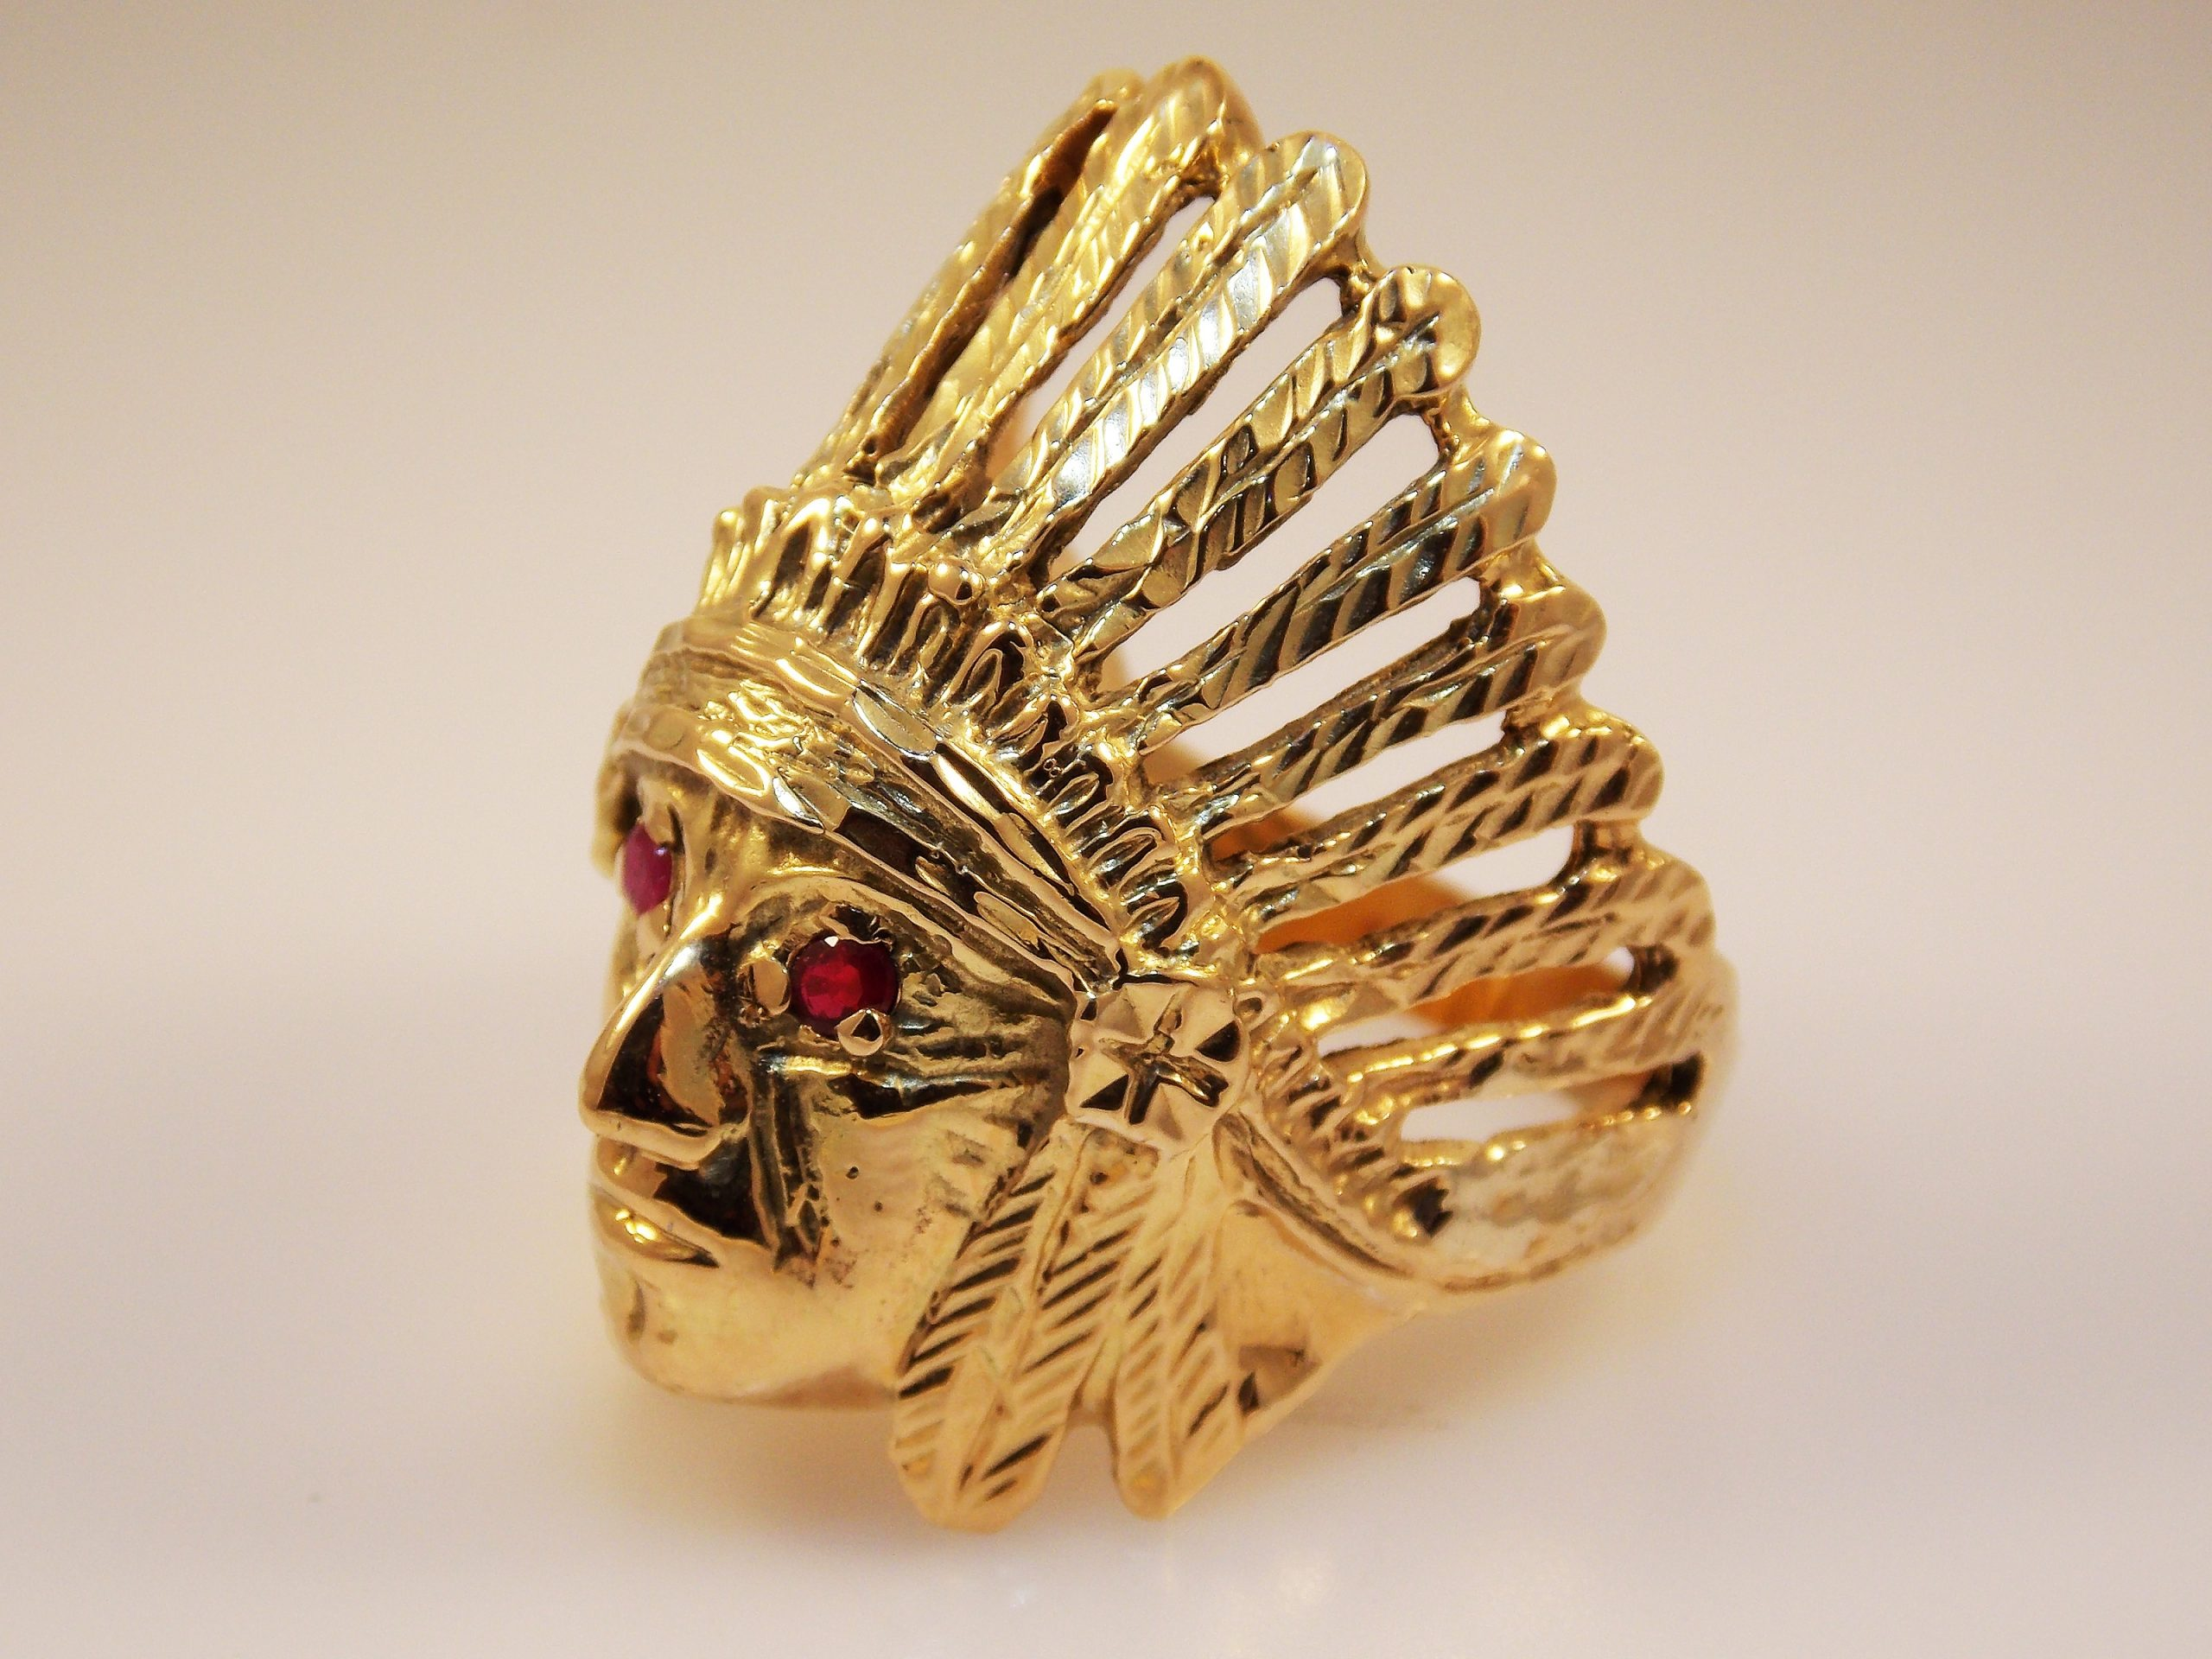 How Many Types of Gold Carats are There?